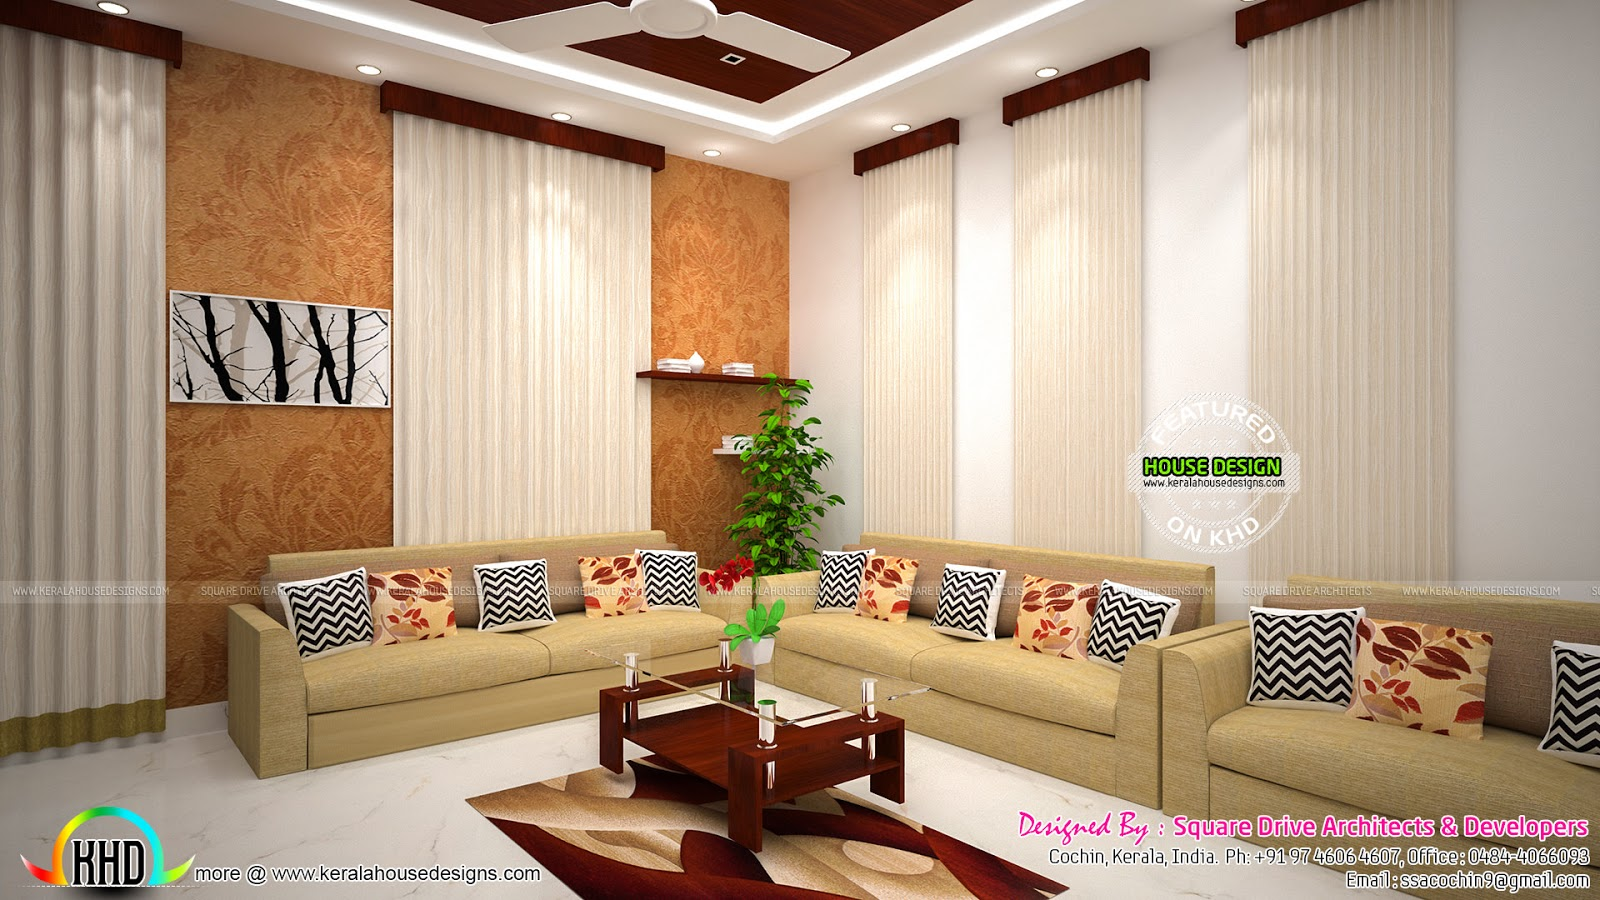 Foyer living dining room interiors kerala home design for Dining room designs kerala